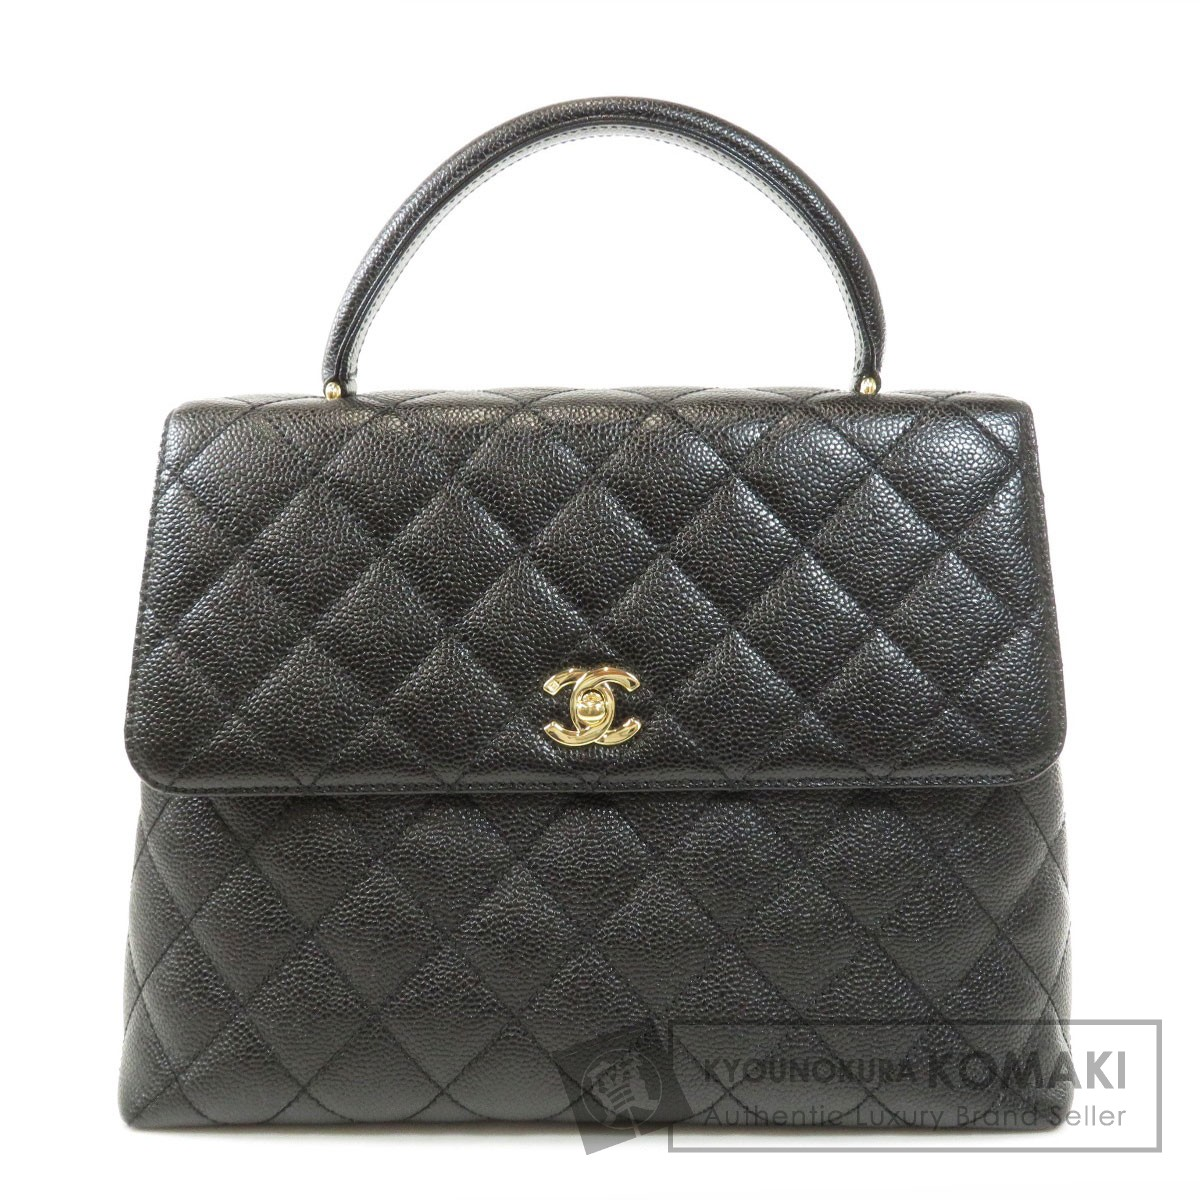 b59cb610e4c0 BRAND:CHANEL; TYPE: COCO Mark Handbag Caviar skin; 100% AUTHENTIC ...